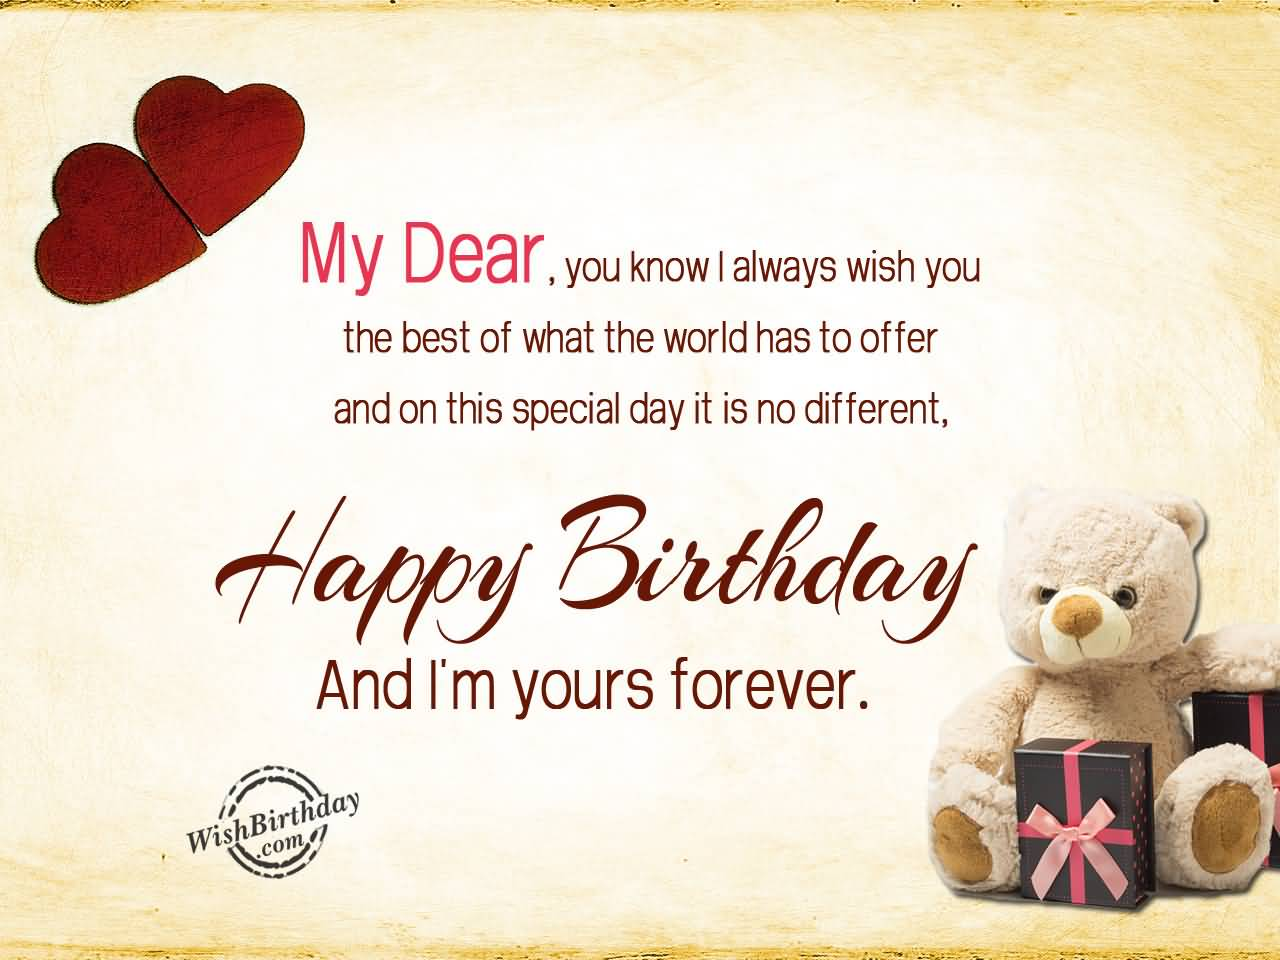 My Dear You Know I Always Wish You The Best Of What The Worlds Has To Offer And On This Special Day It Is No Different Happy Birthday And I'm Yours Forever